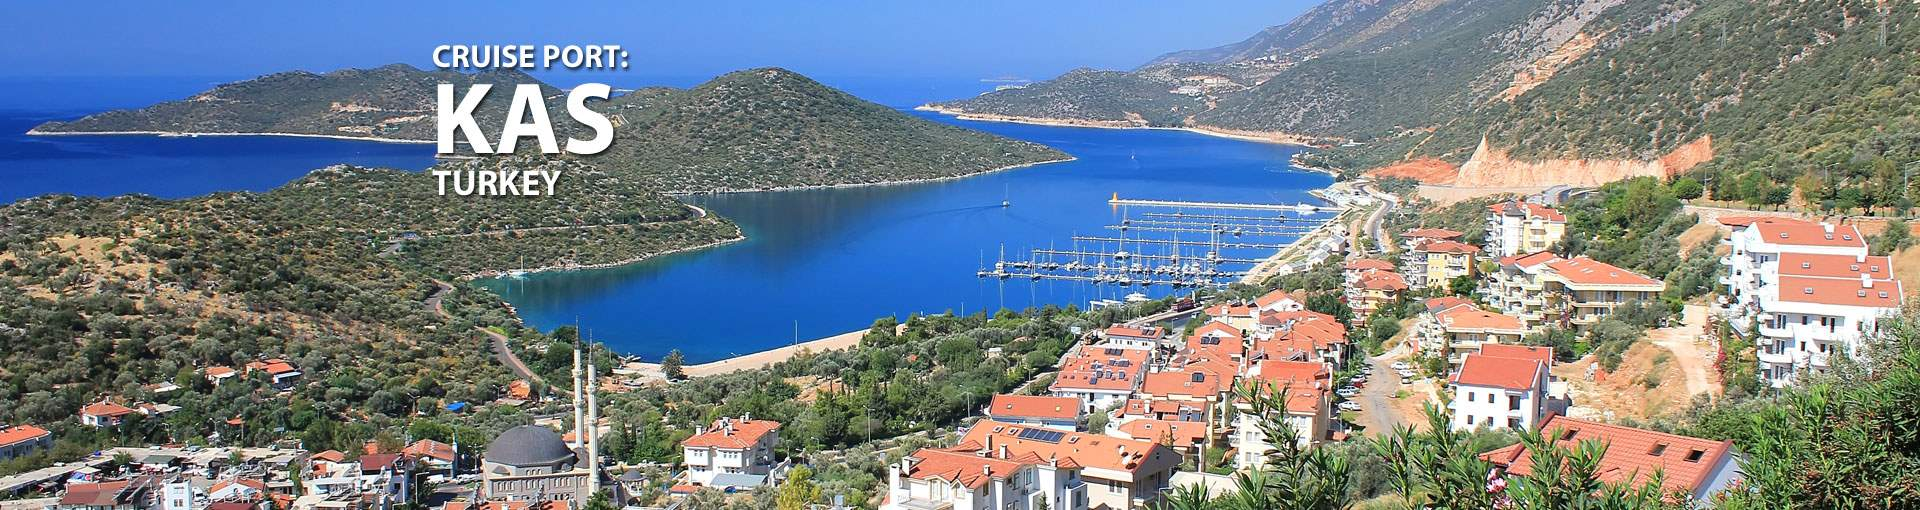 Cruises to Kas, Turkey